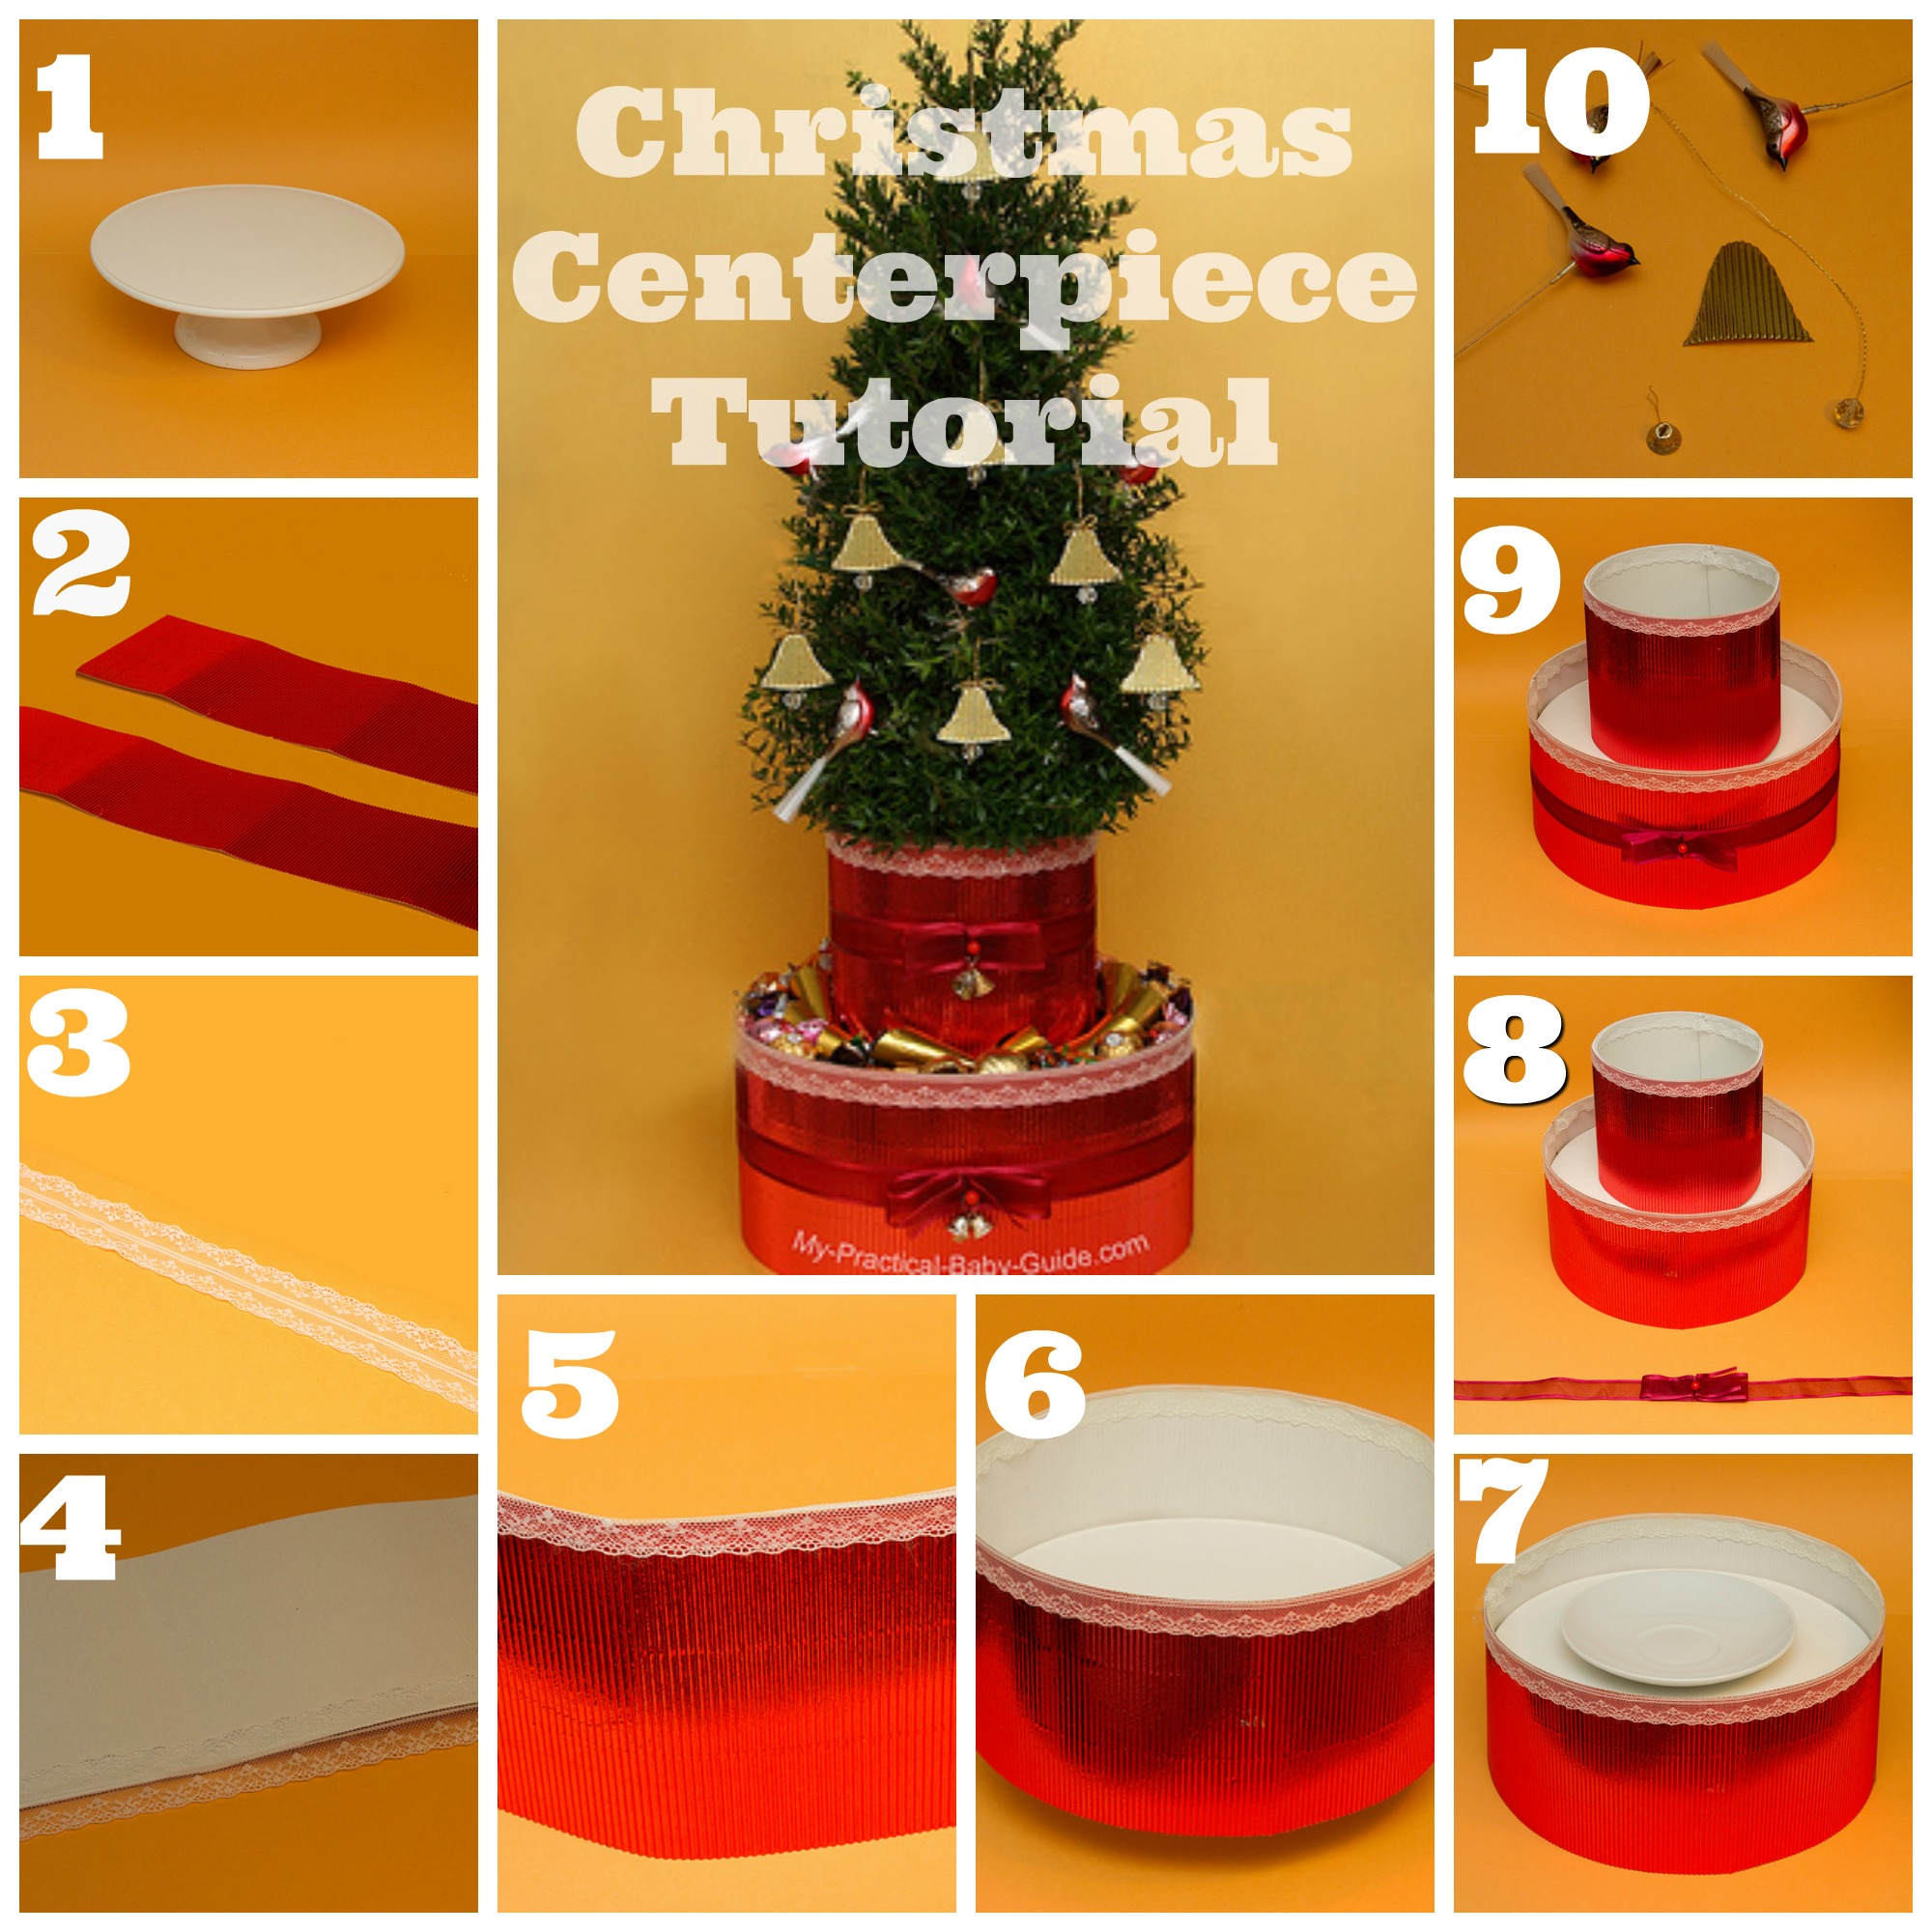 Christmas Tree Centerpiece Tutorial